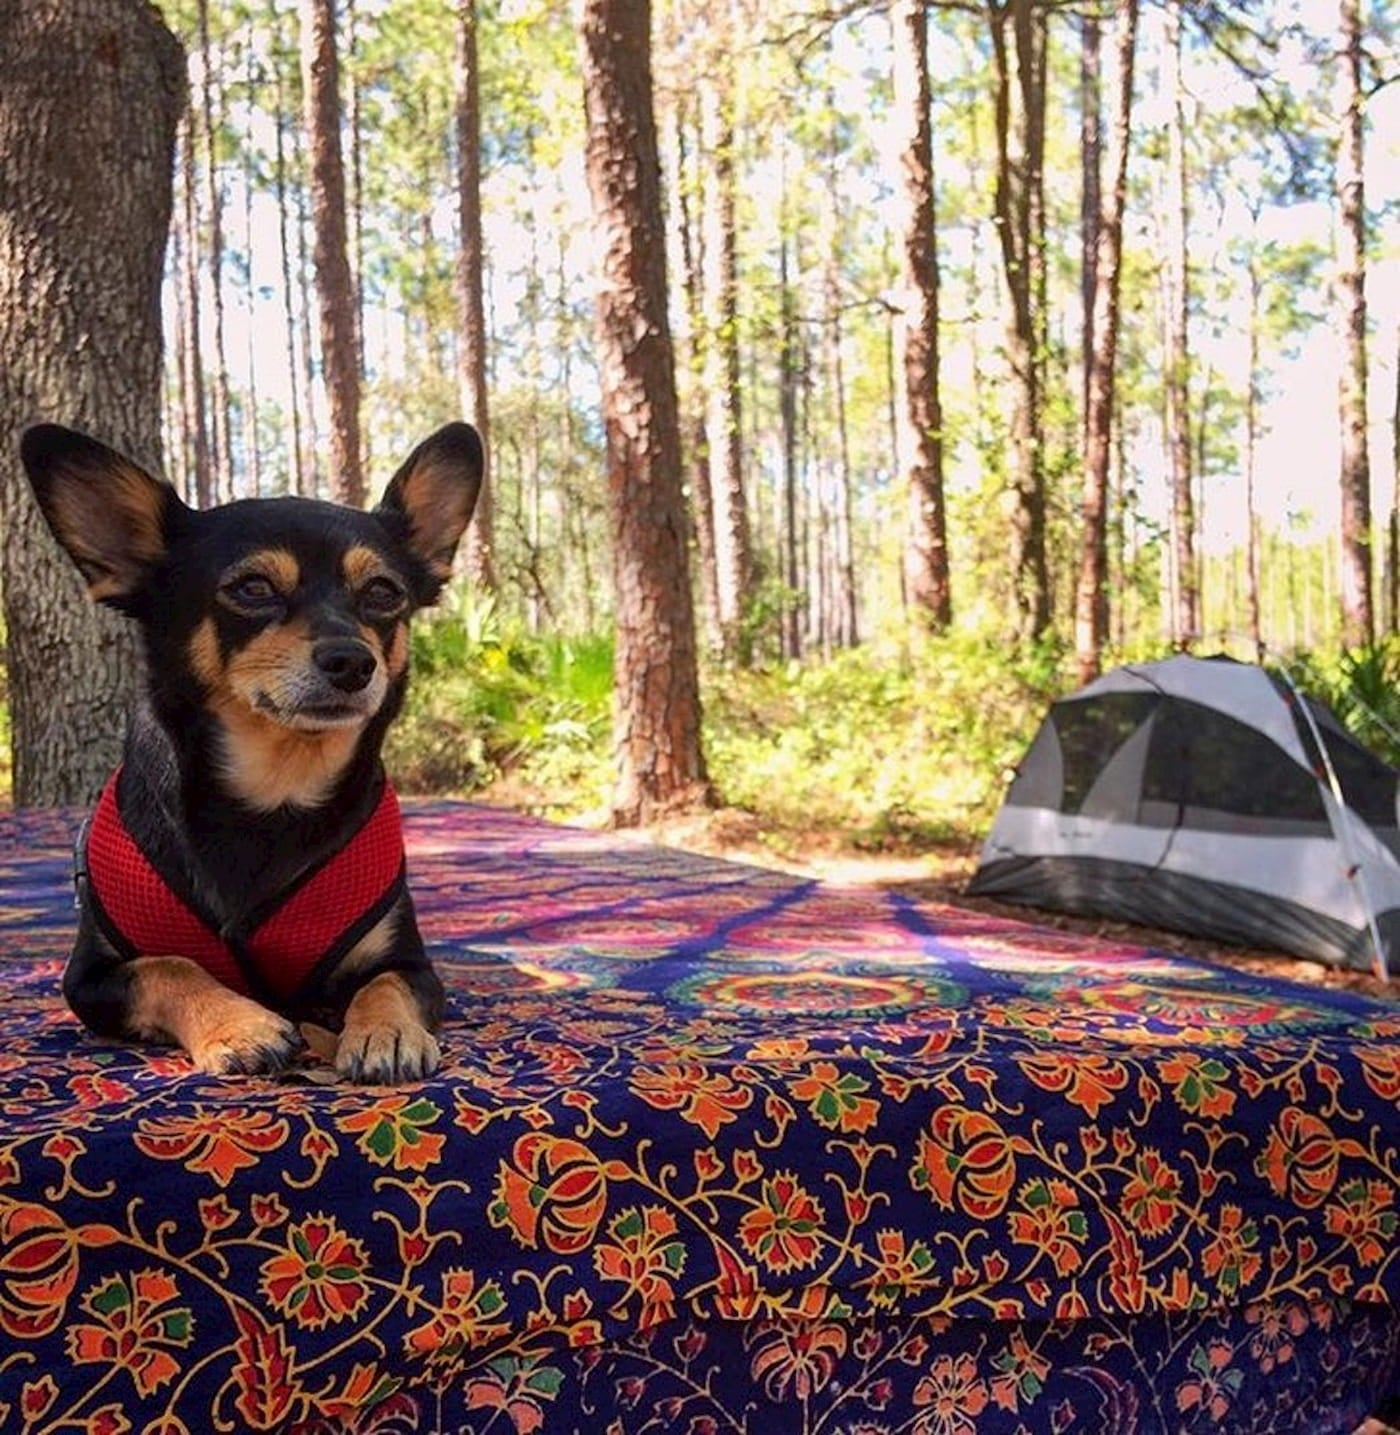 Small dog sitting on picnic table at a campsite.